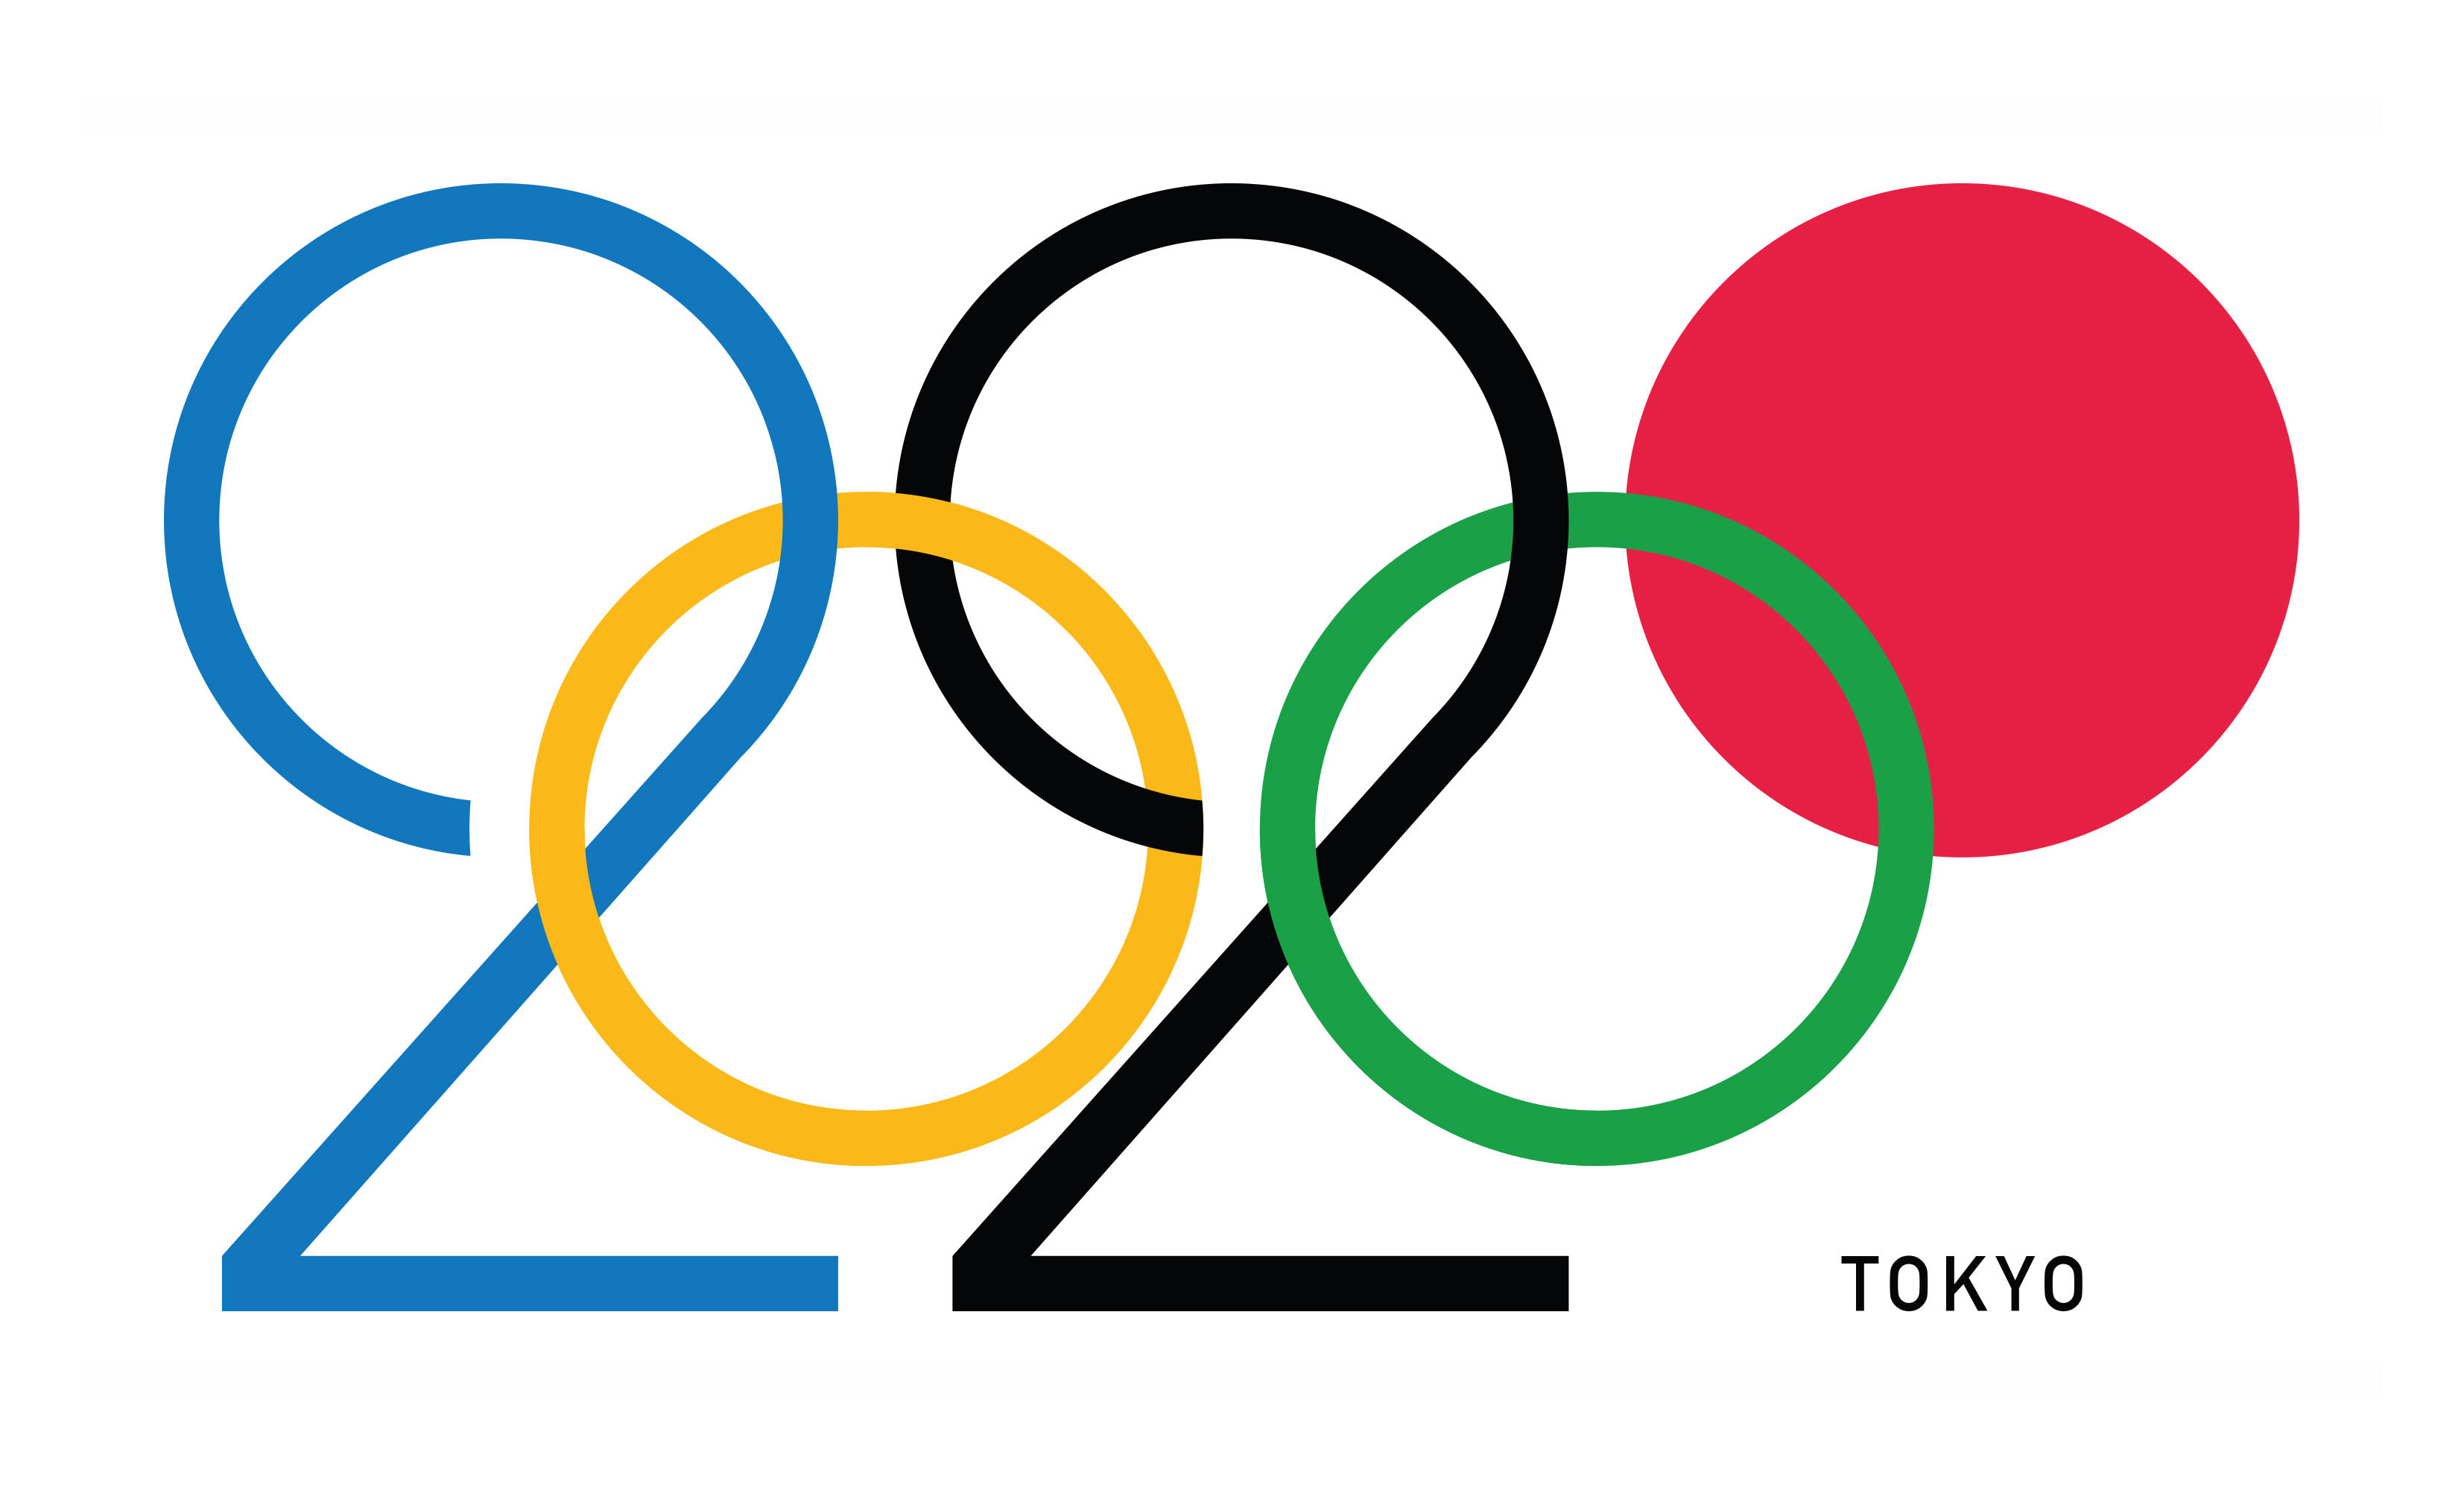 Up to 10,000 Japanese fans to be permitted at Tokyo 2020 Olympic venues